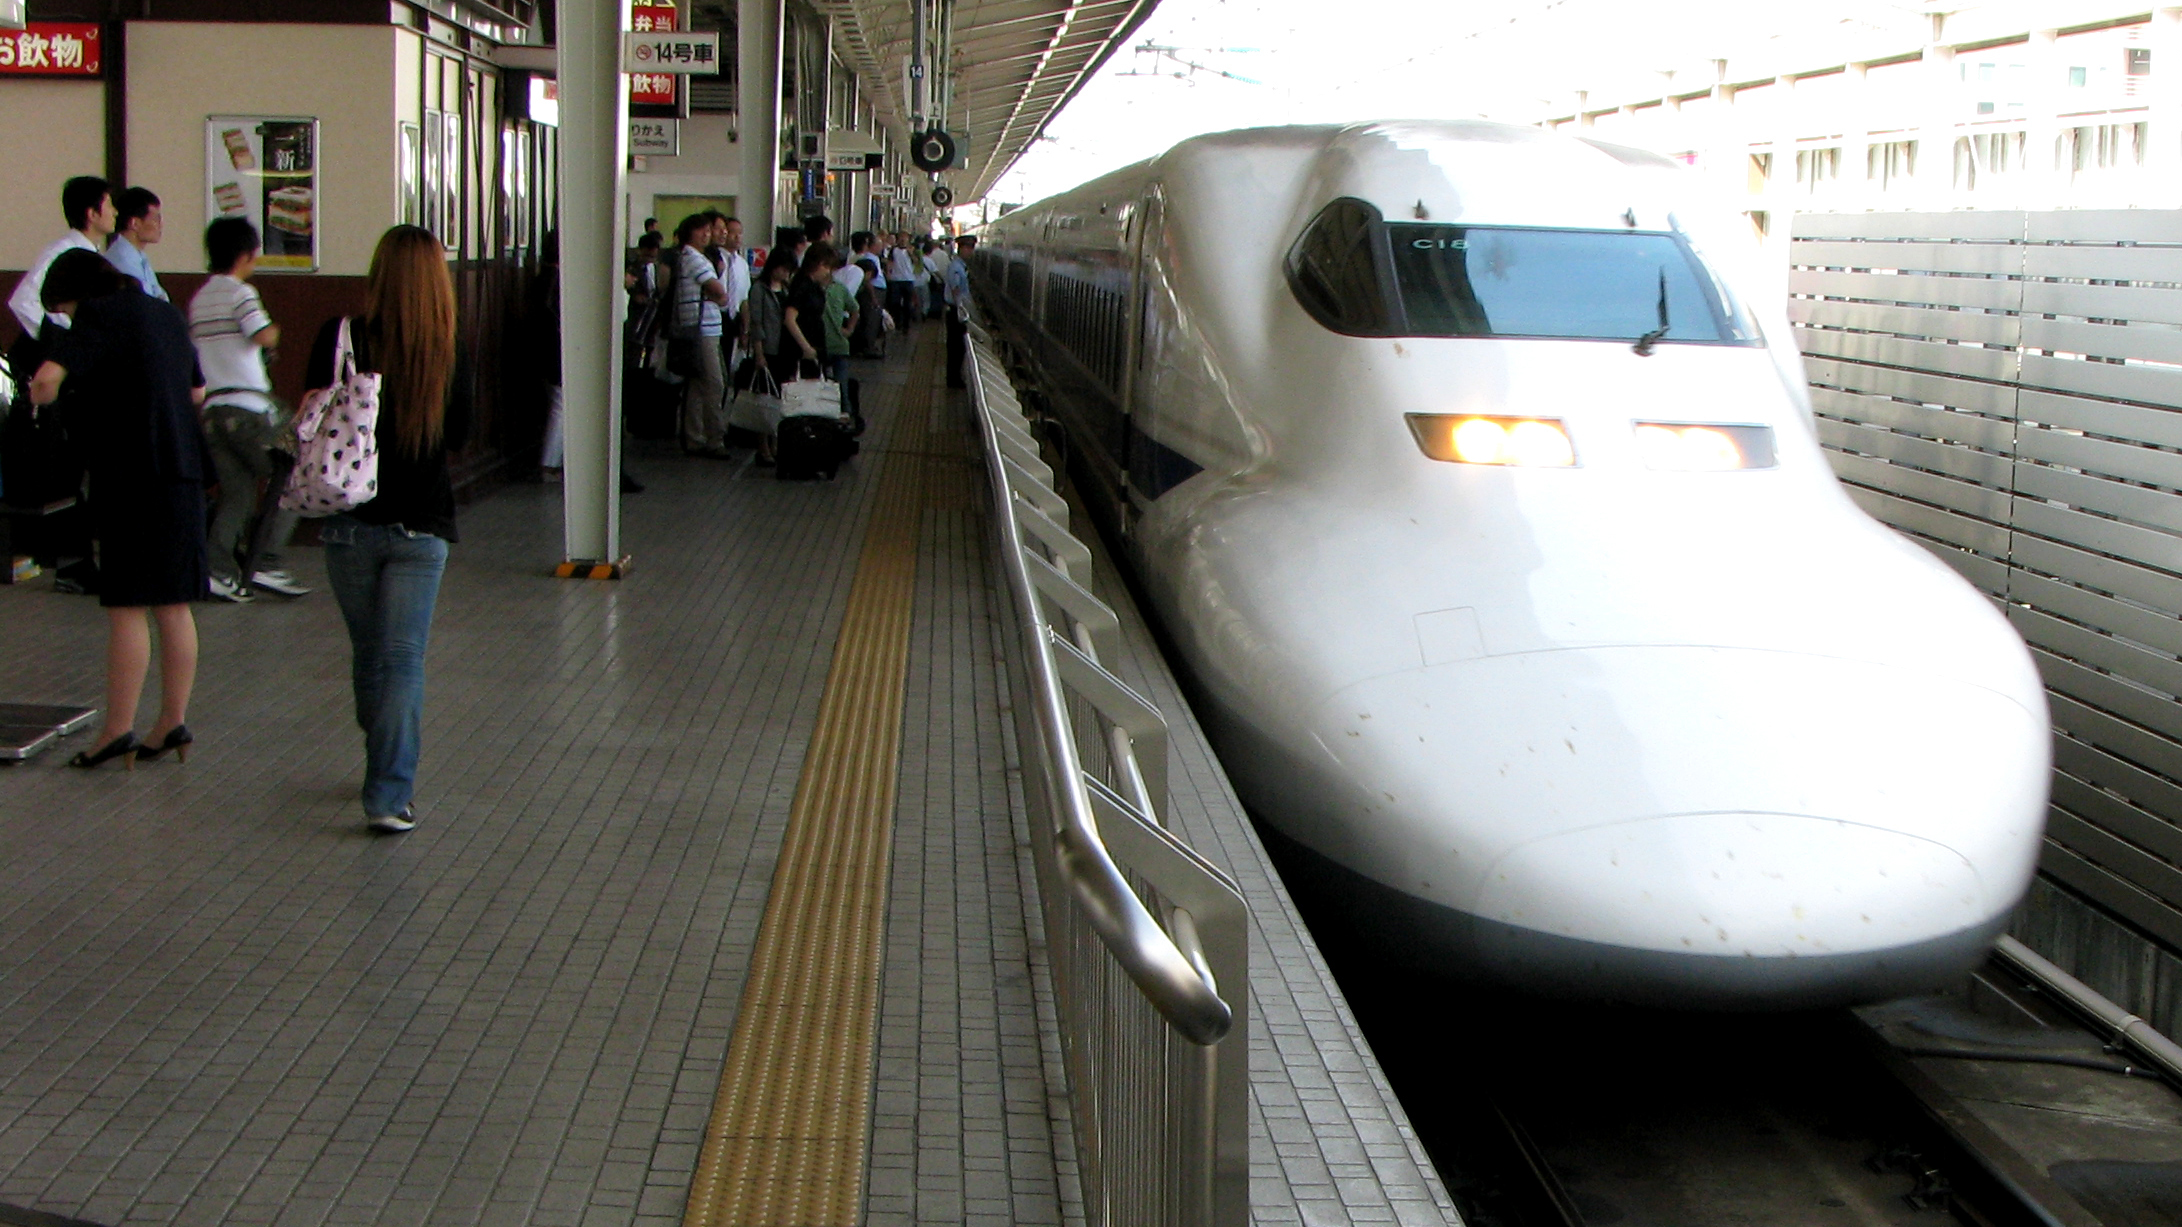 Japanese Train Company Apologises After Train Leaves 25 Seconds Early